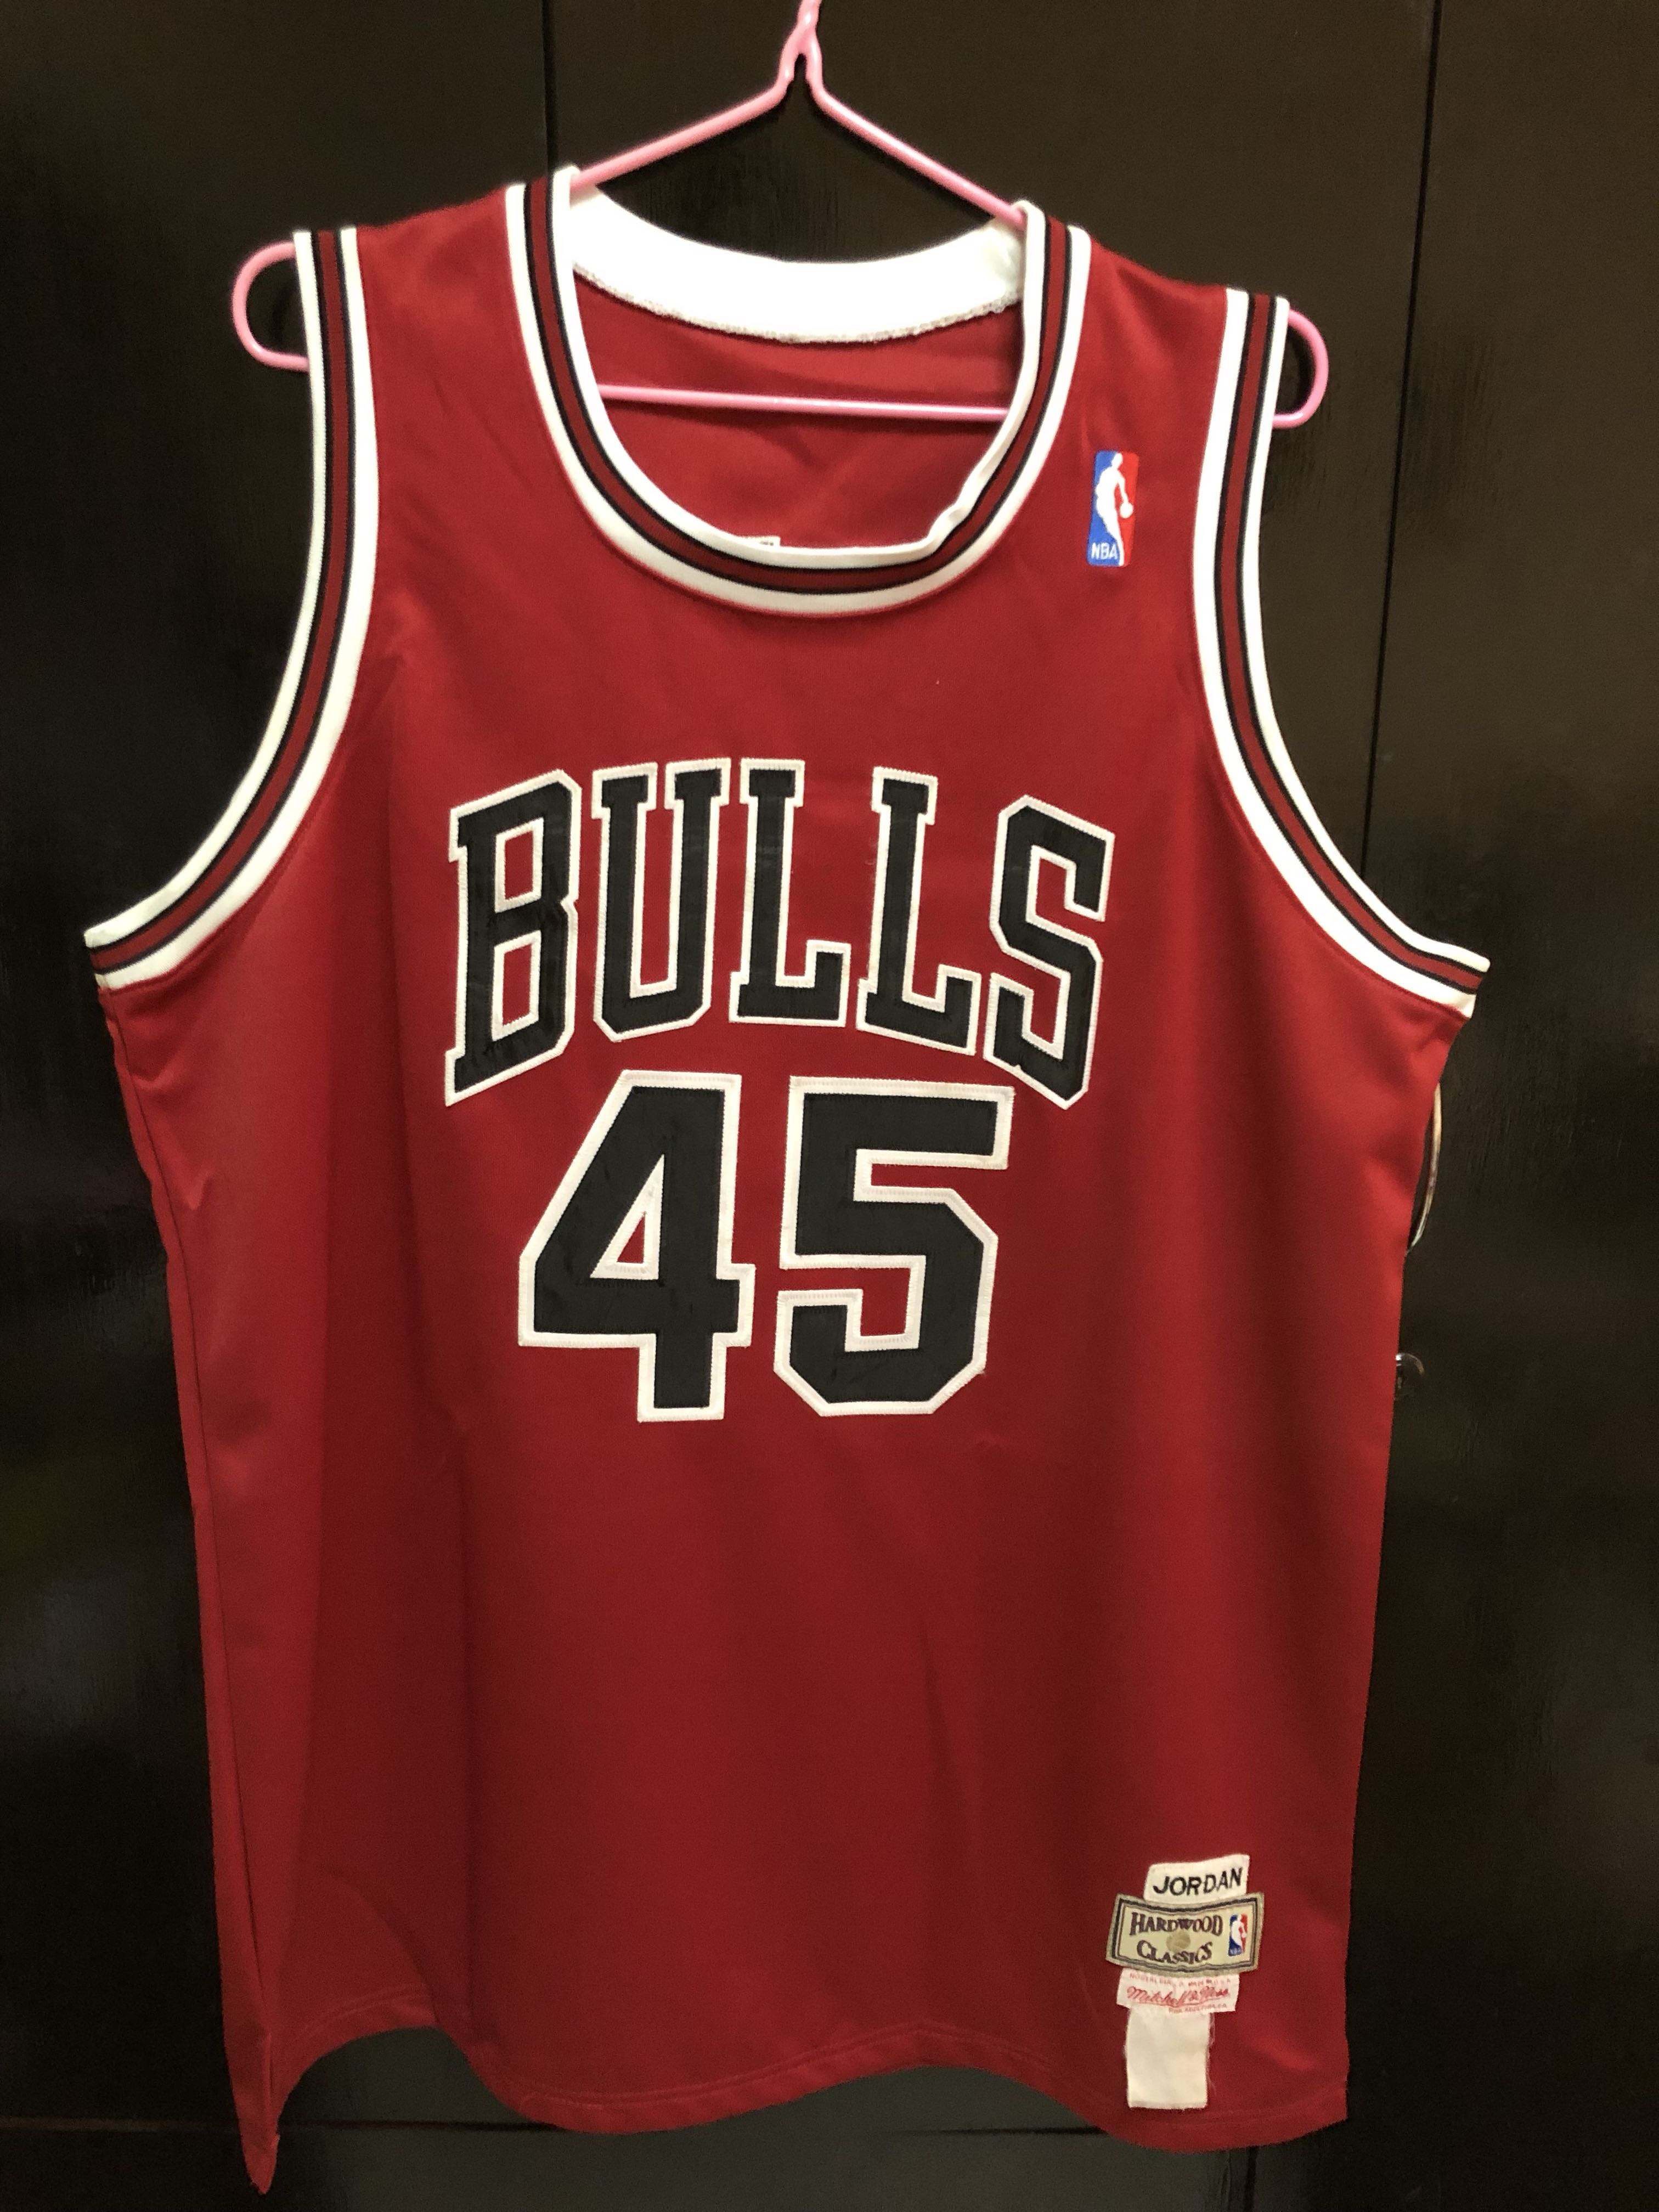 new arrival b7538 d96e4 Michael Jordan #45 (bulls away)